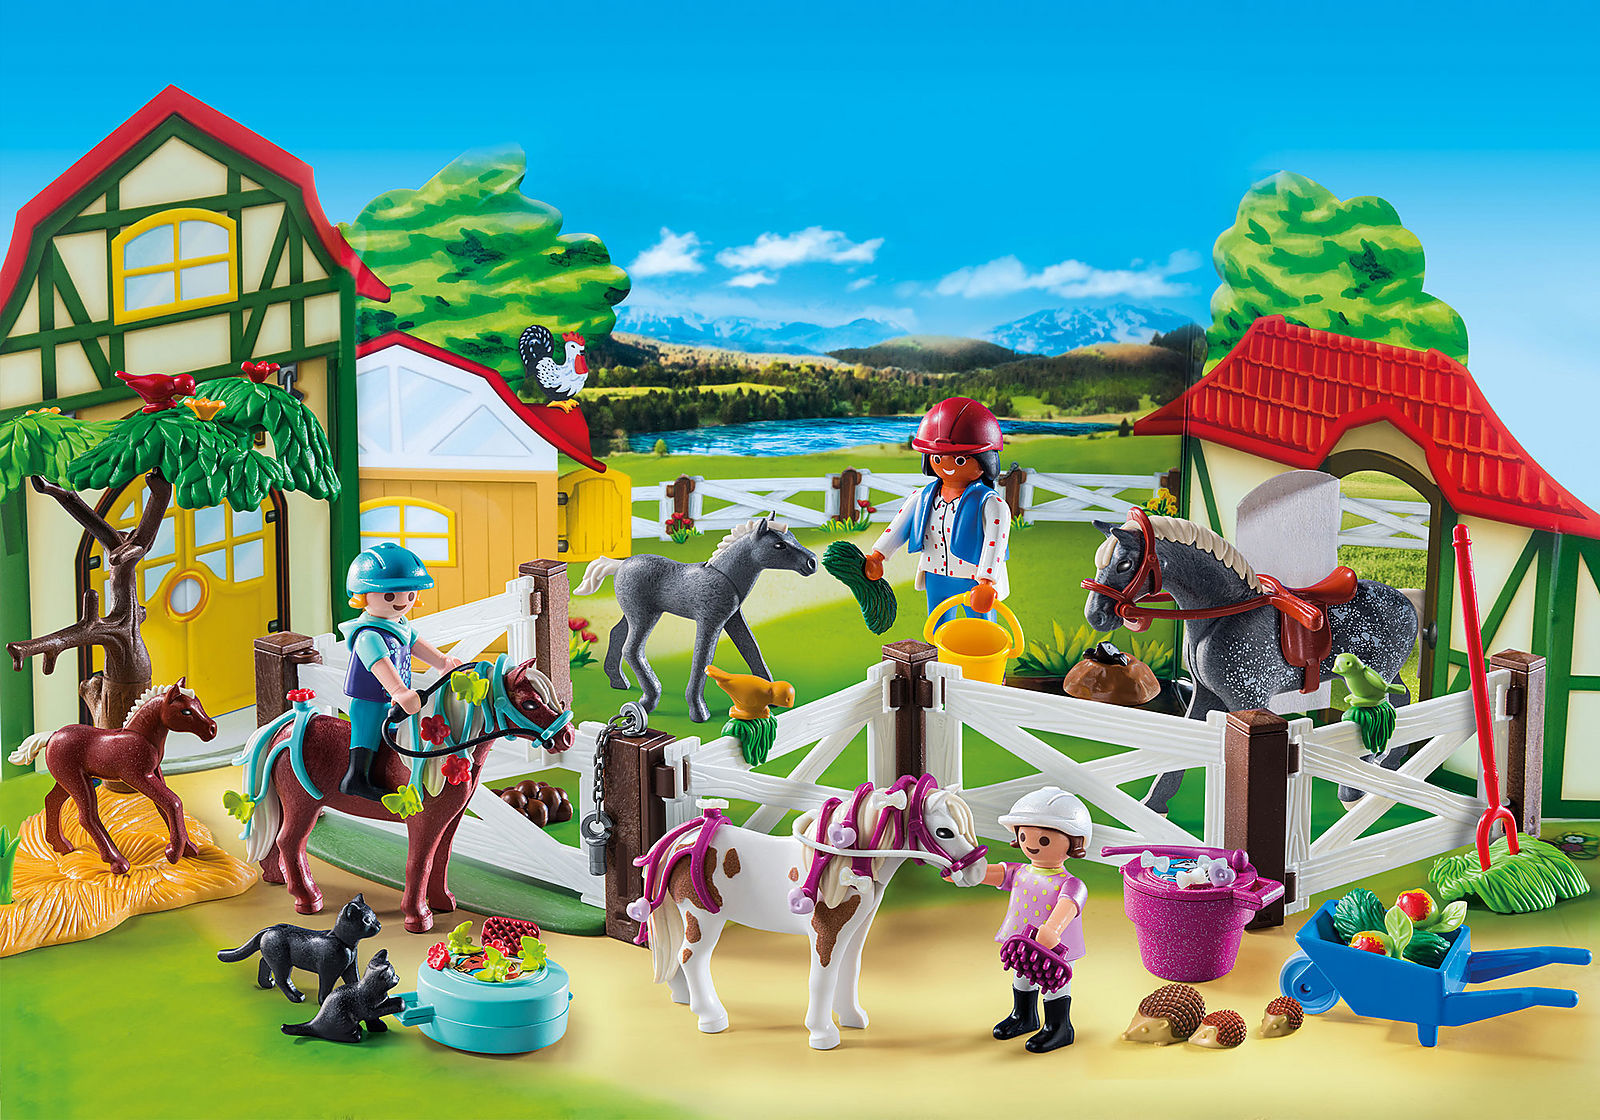 Playmobil: Advent Calendar - Horse Farm image